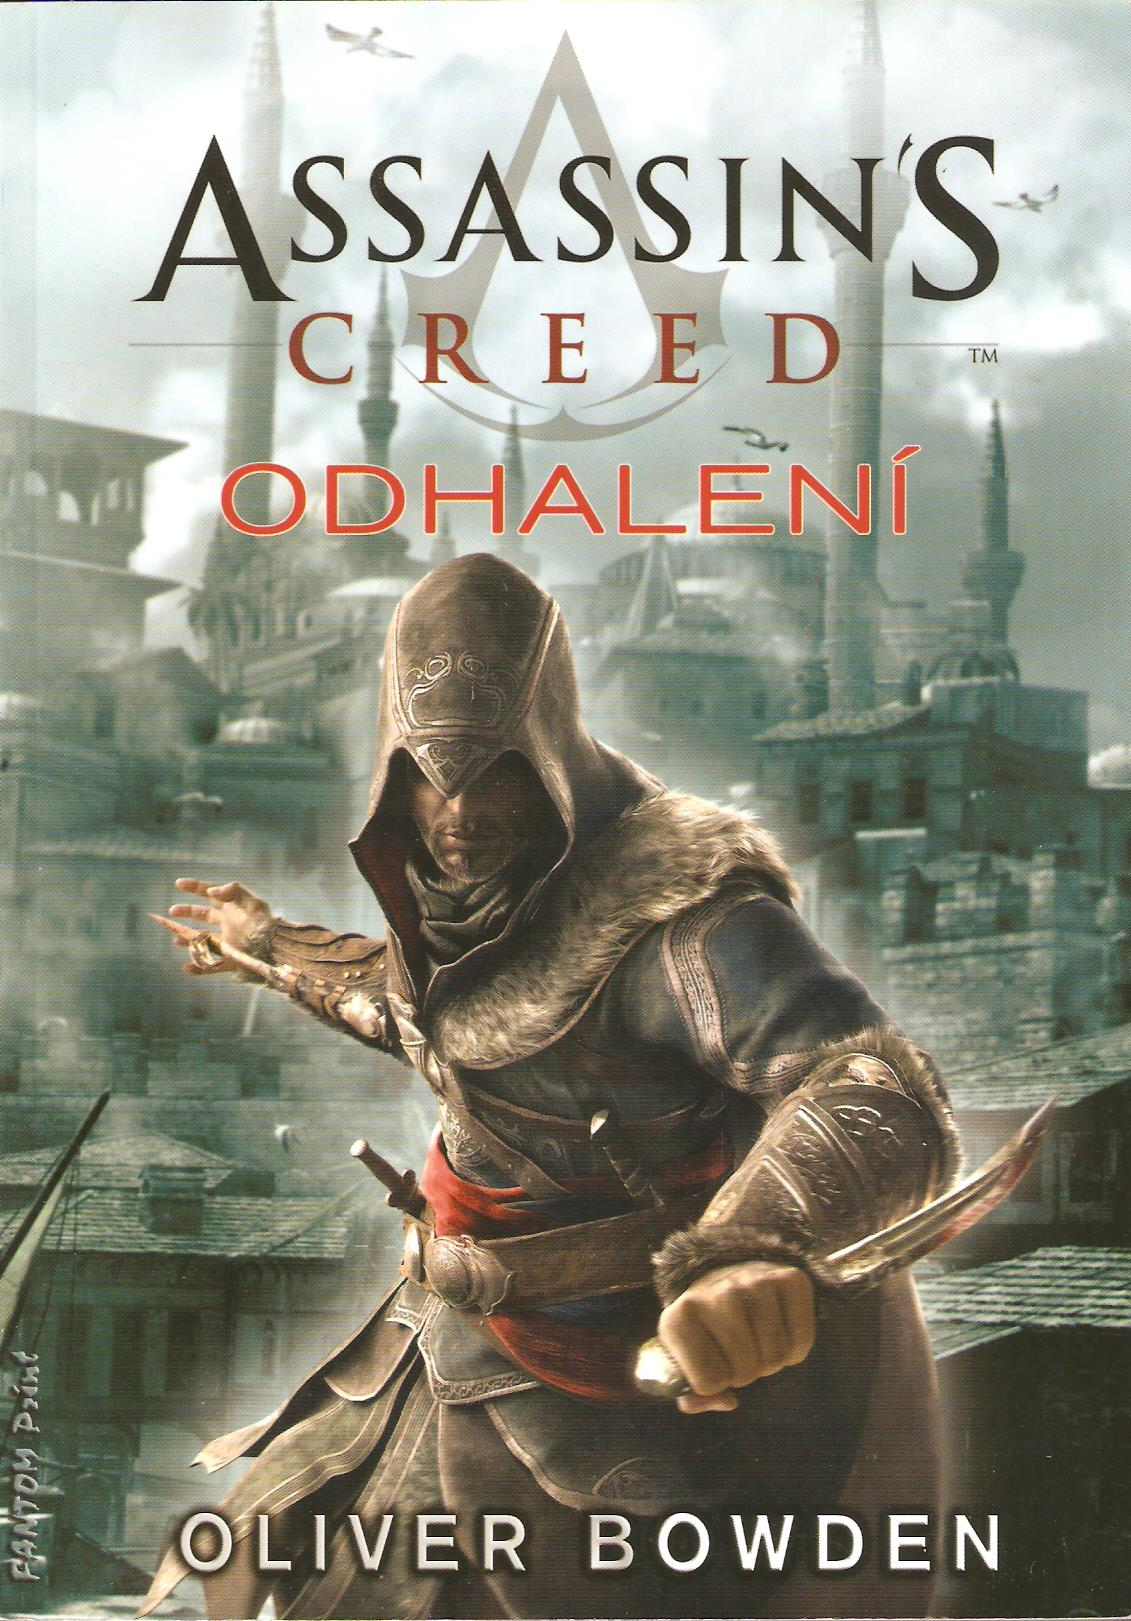 A - Assassin´s Creed: Odhalení [Bowden Oliwer]